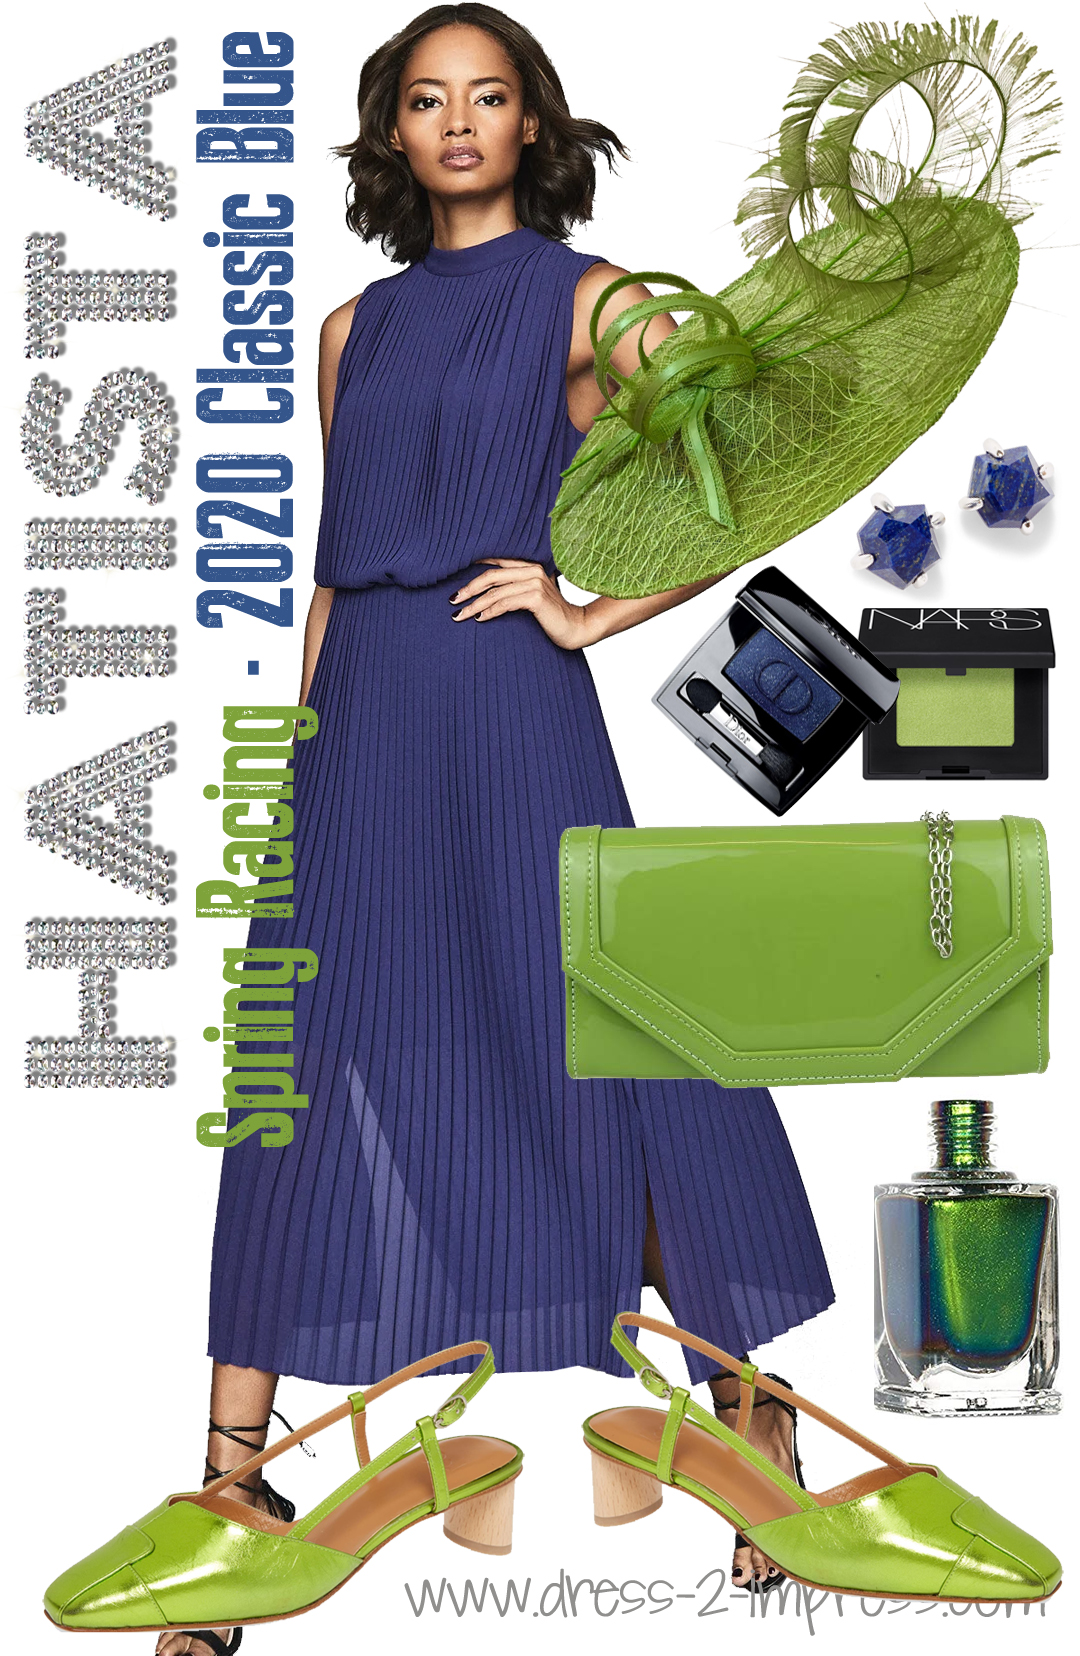 Outfits in Pantone Classic Blue 2020. How to wear Pantone Classic Blue. Pantone Color of the Year 2020 Classic Blue. Classic Blue Wedding Guests outfits. What colors to wear with Classic Blue. Blue and Green Colour Combo outfit ideas.